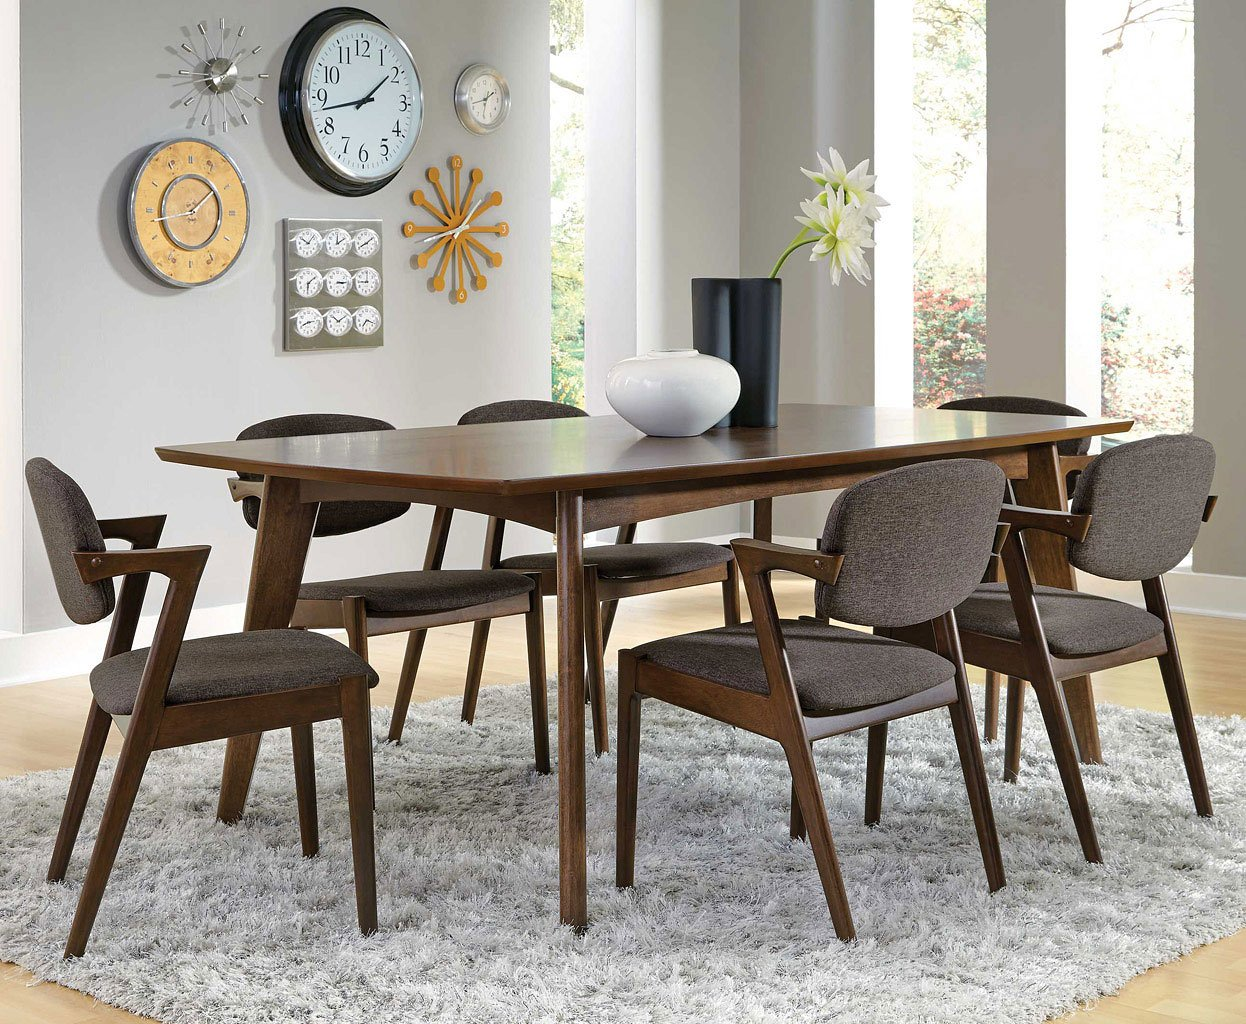 Remarkable Malone Rectangular Dining Room Set Interior Design Ideas Clesiryabchikinfo